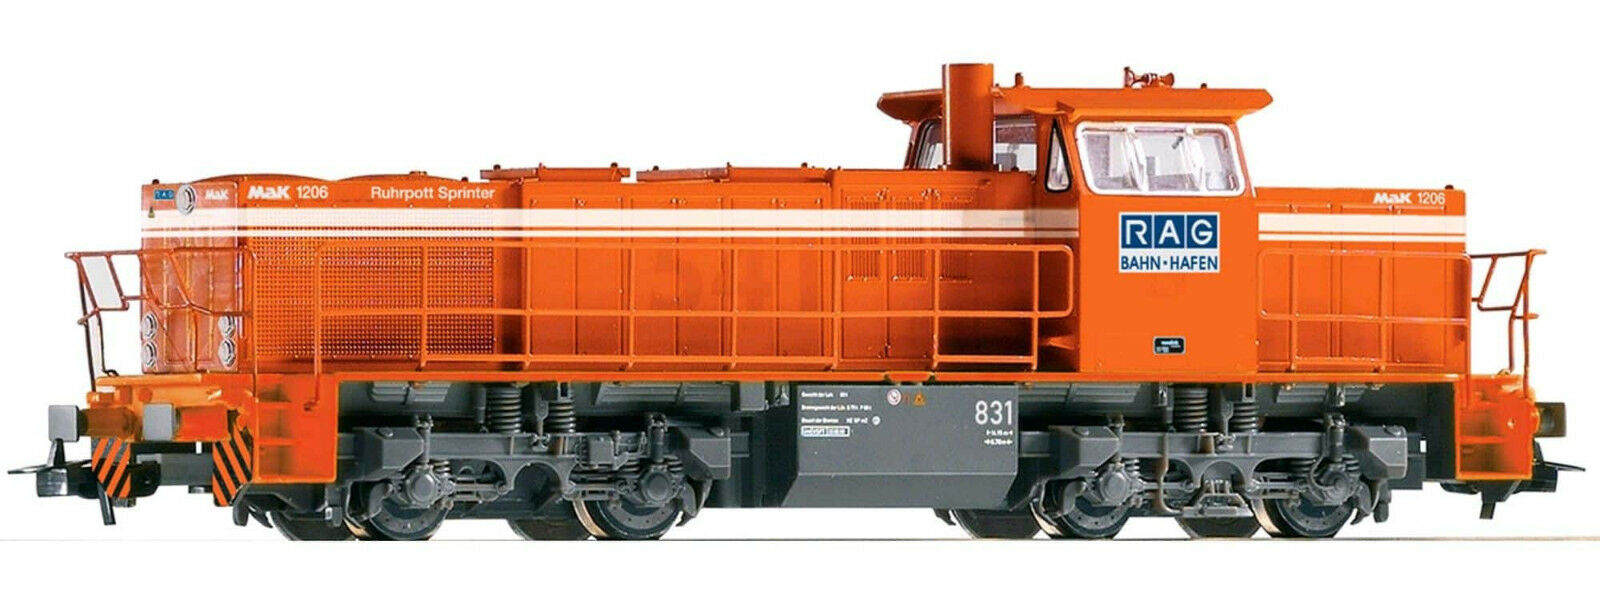 Piko 59481 Locomotora Diésel G1206 Rag EP V Digital (Sonido) Disponible